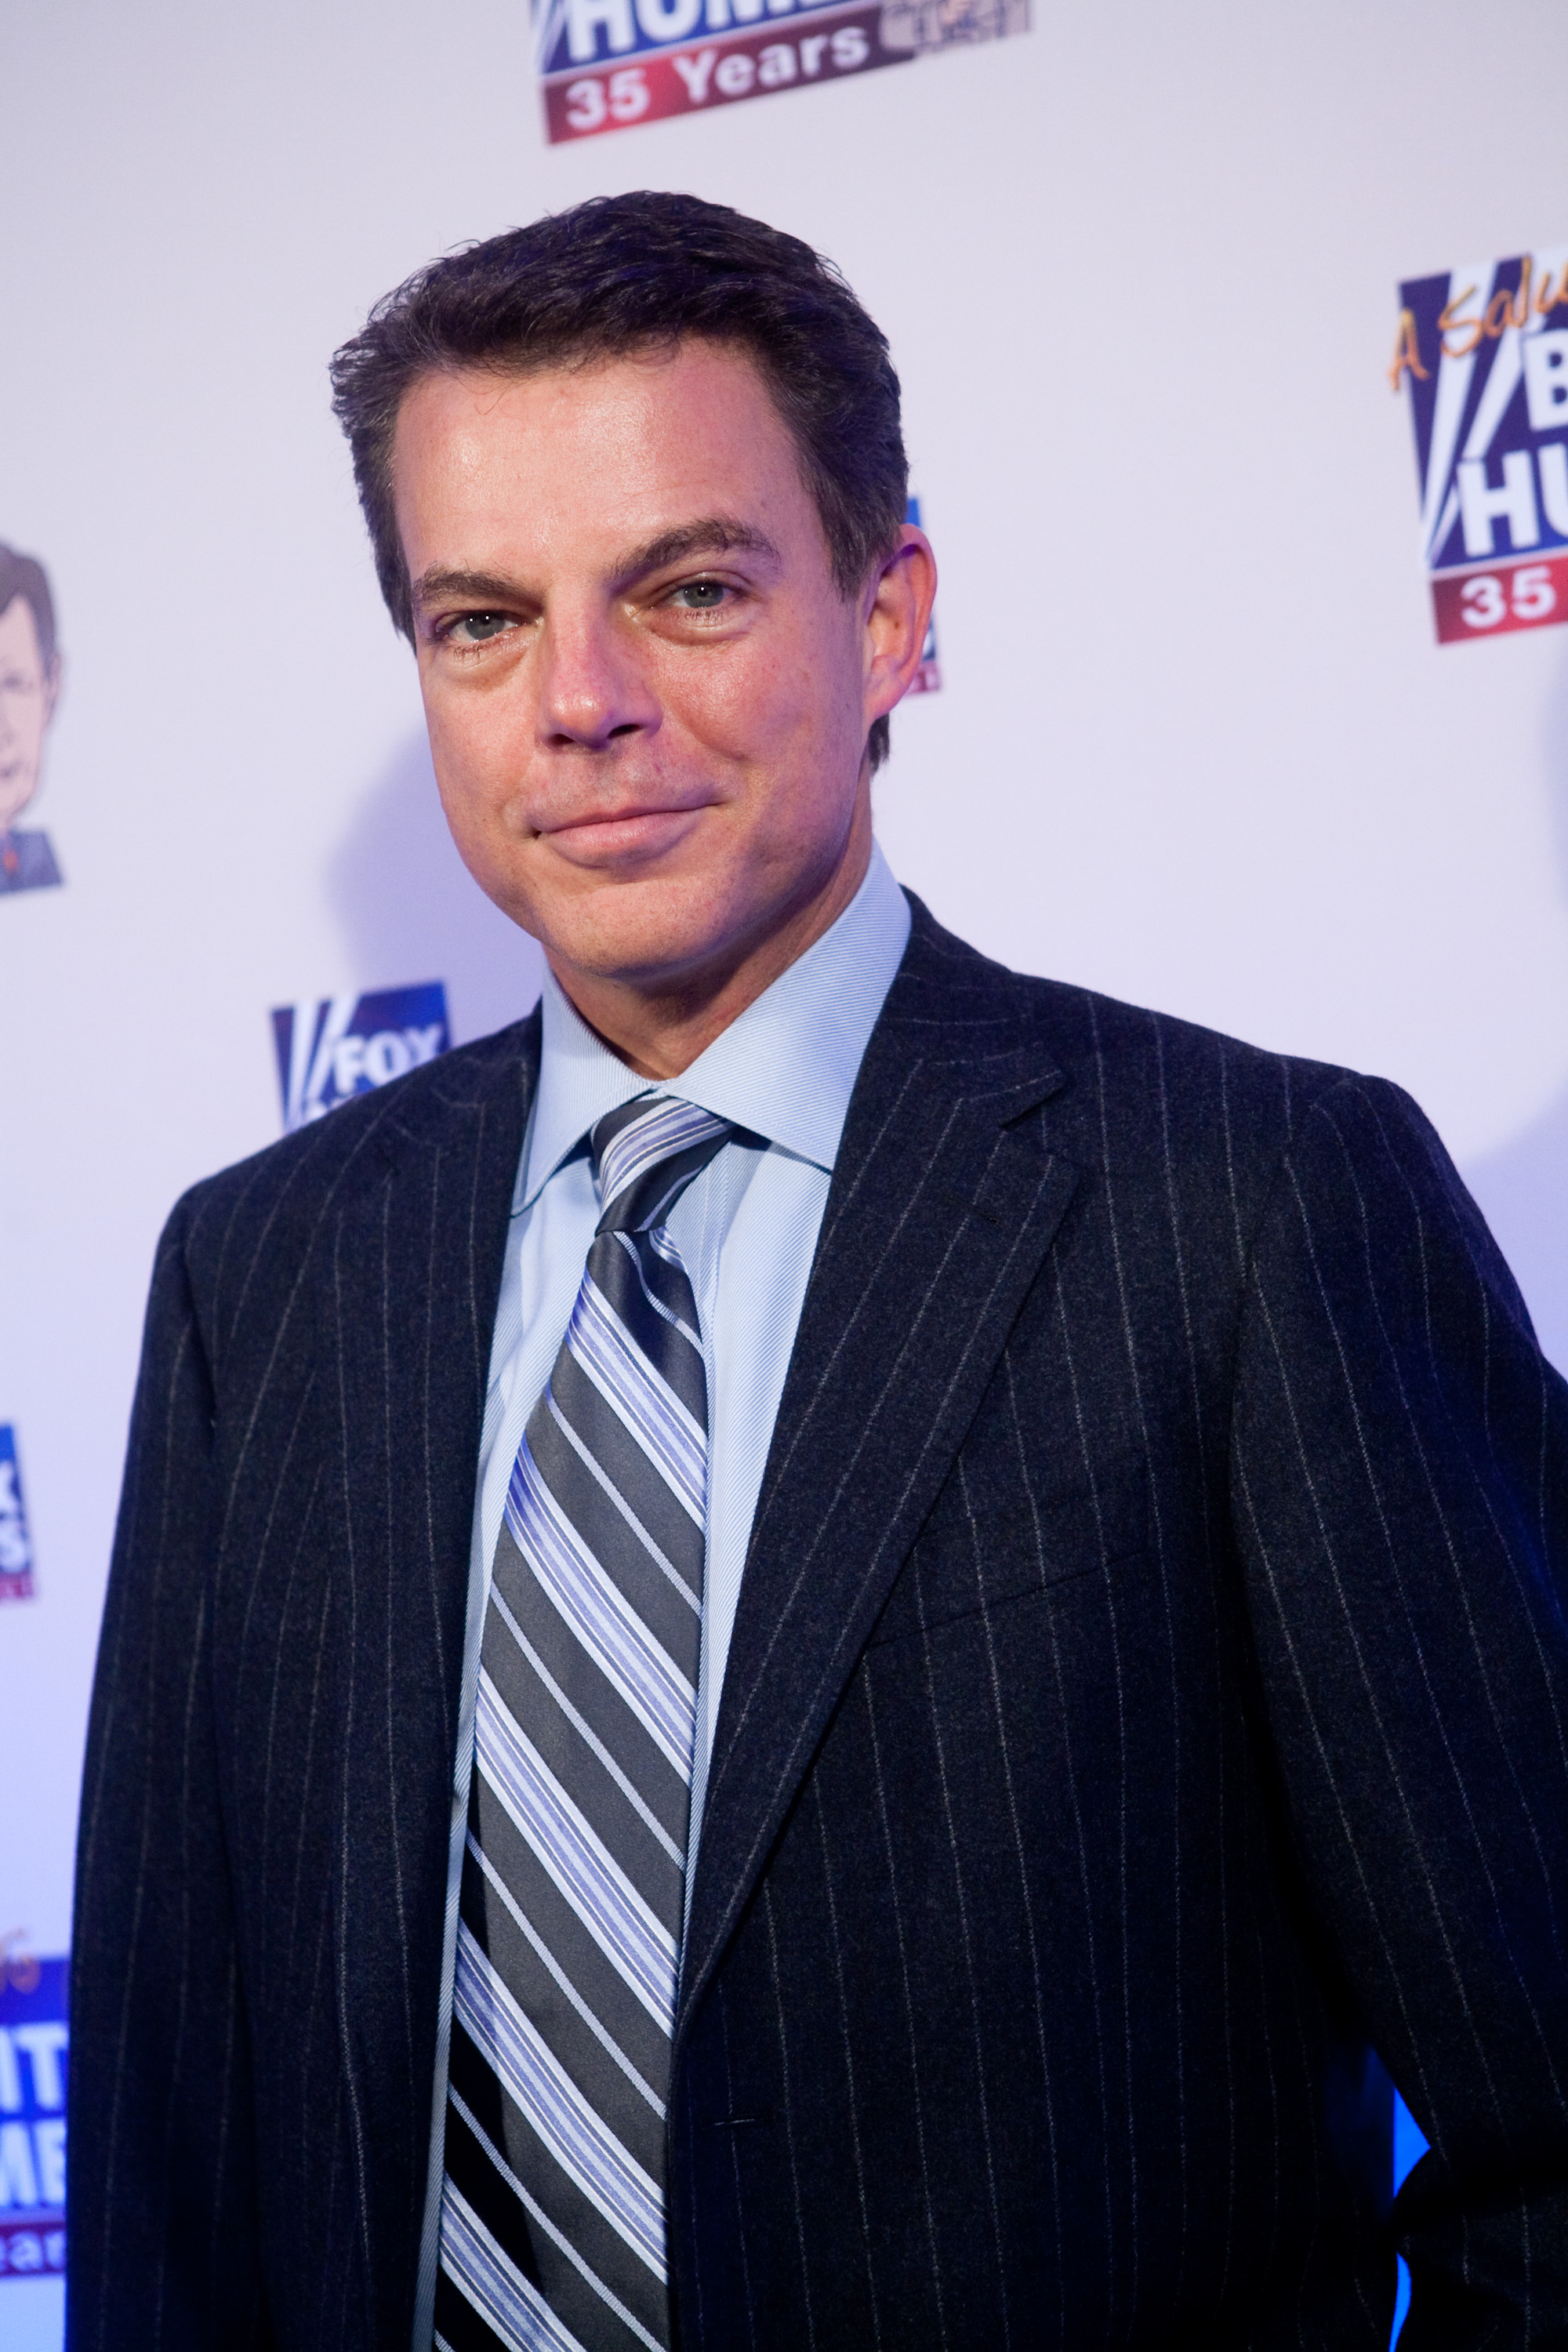 Former FOX News host Shepard Smith poses on the red carpet upon arrival at a salute to FOX News Channel's Brit Hume on January 8, 2009 in Washington, DC. (Brendan Hoffman/Getty Images)